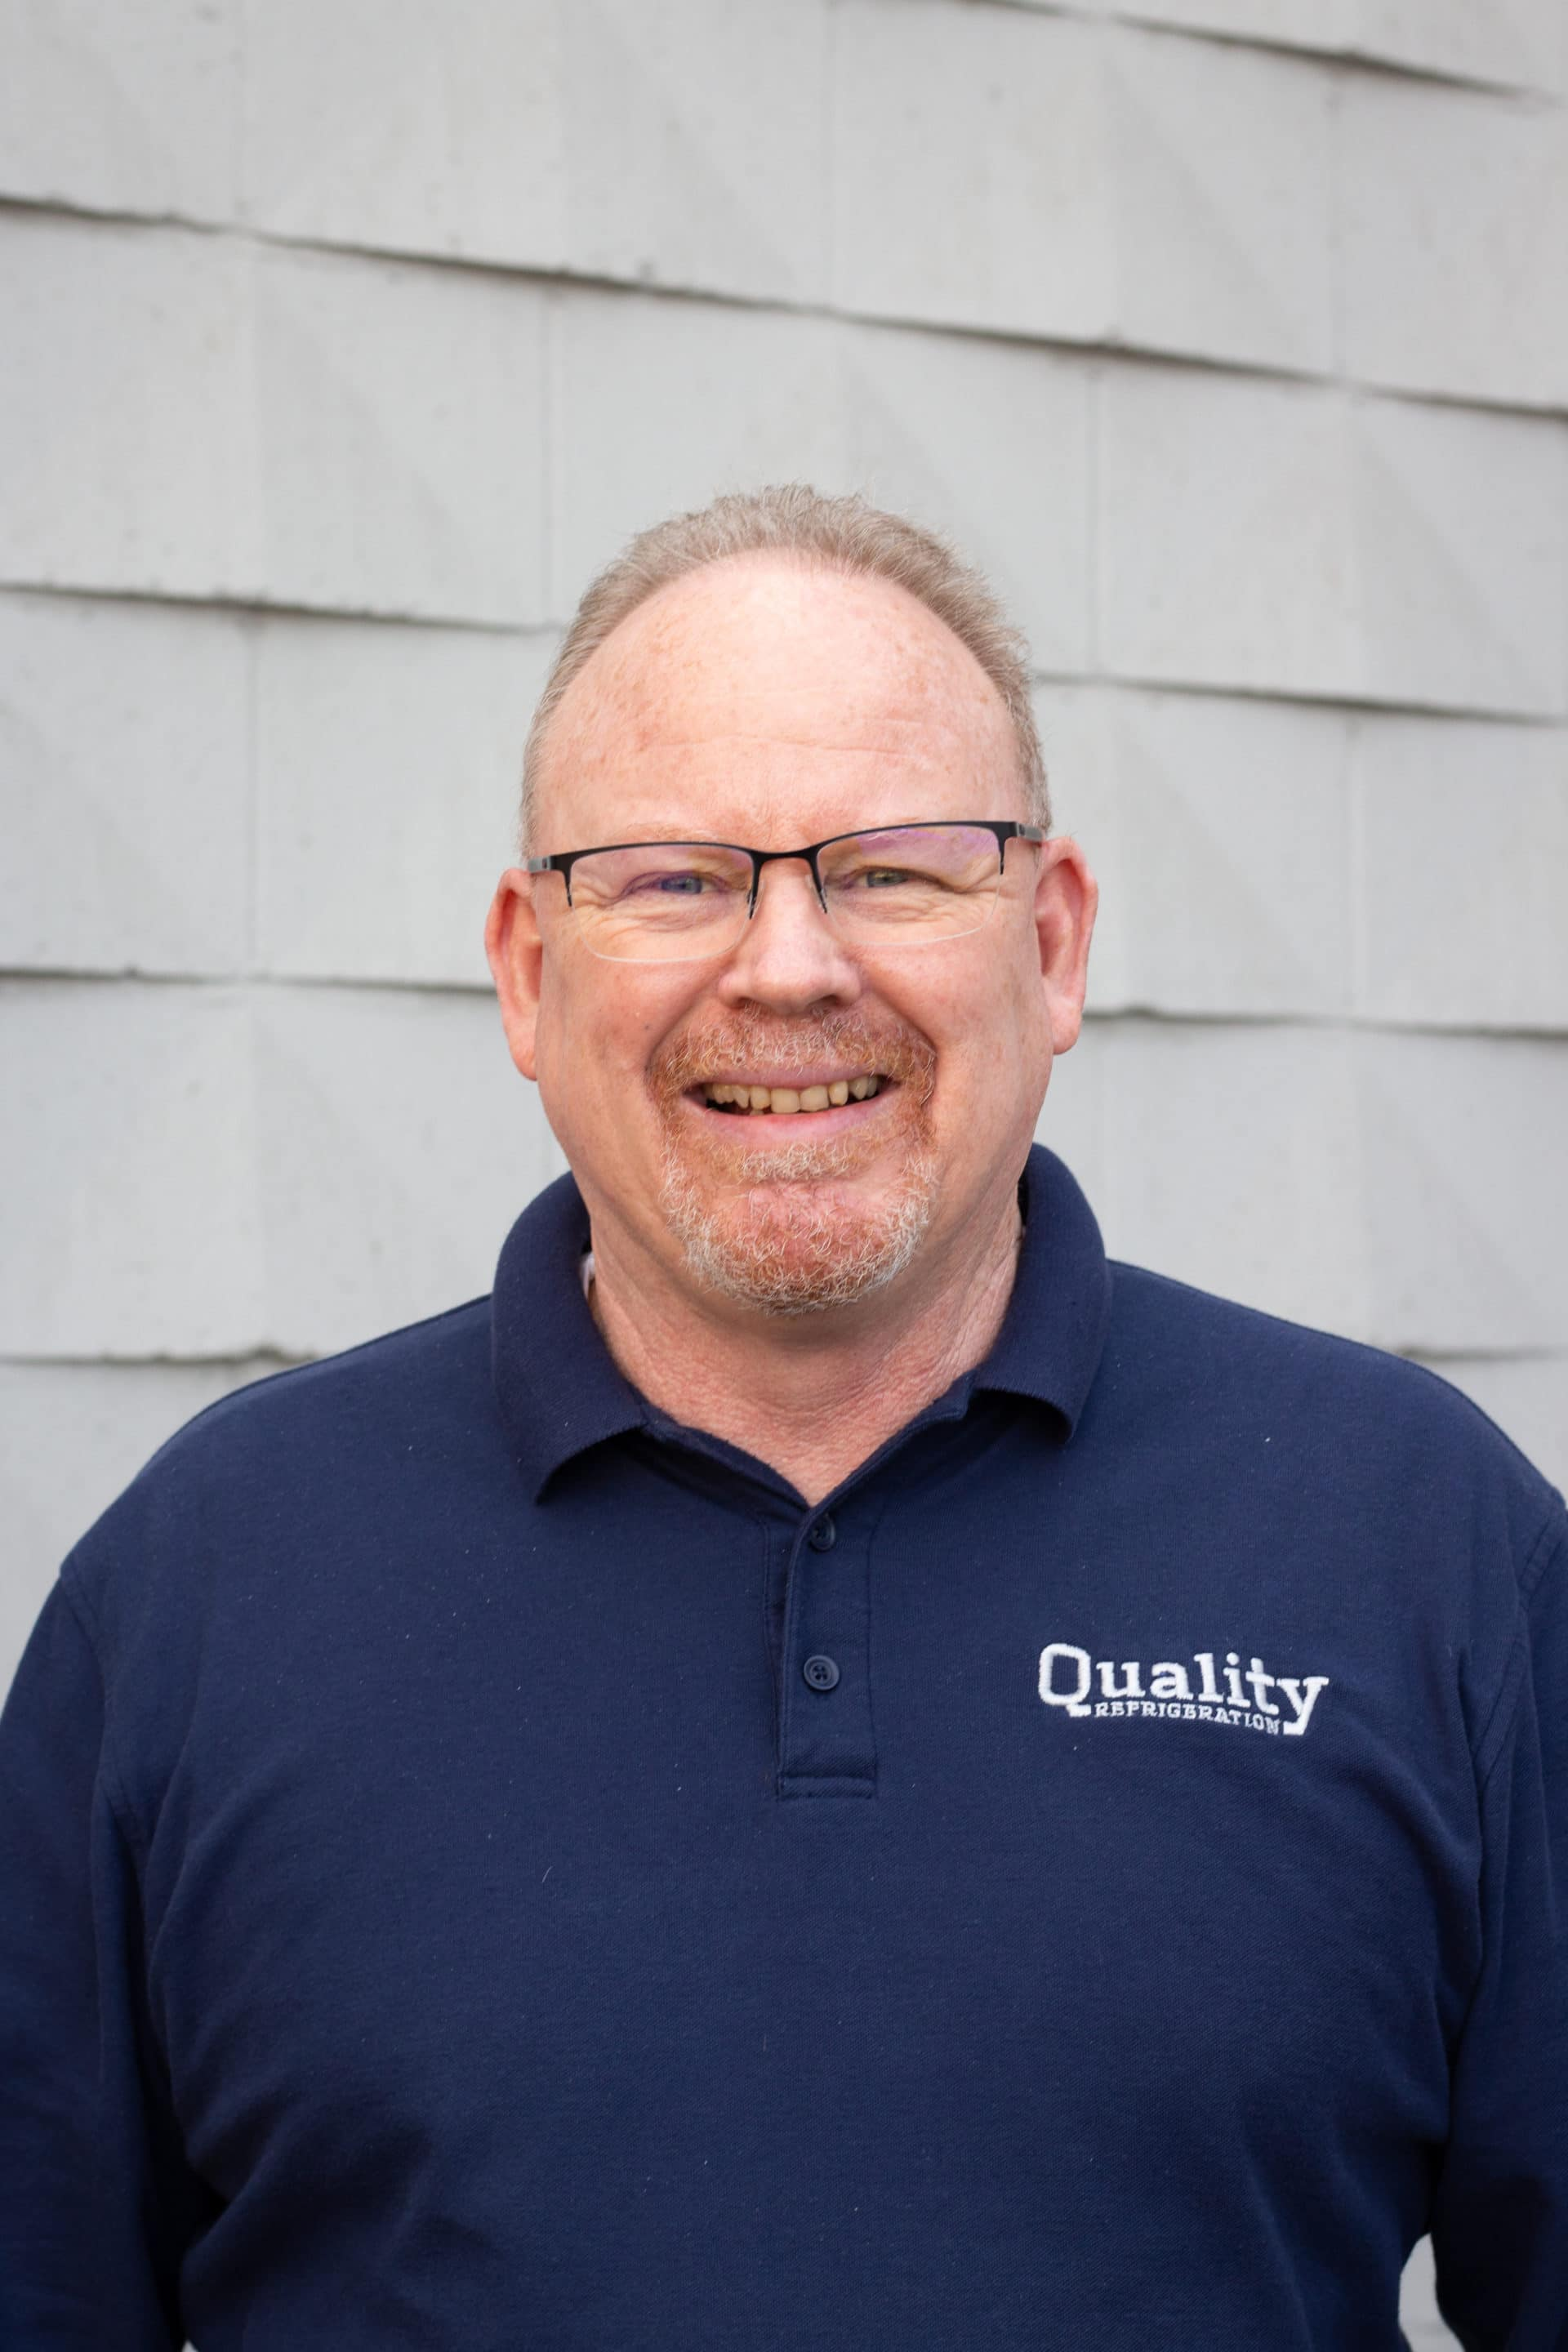 Dave Coyle- Assistant Service Manager at Quality Refrigeration